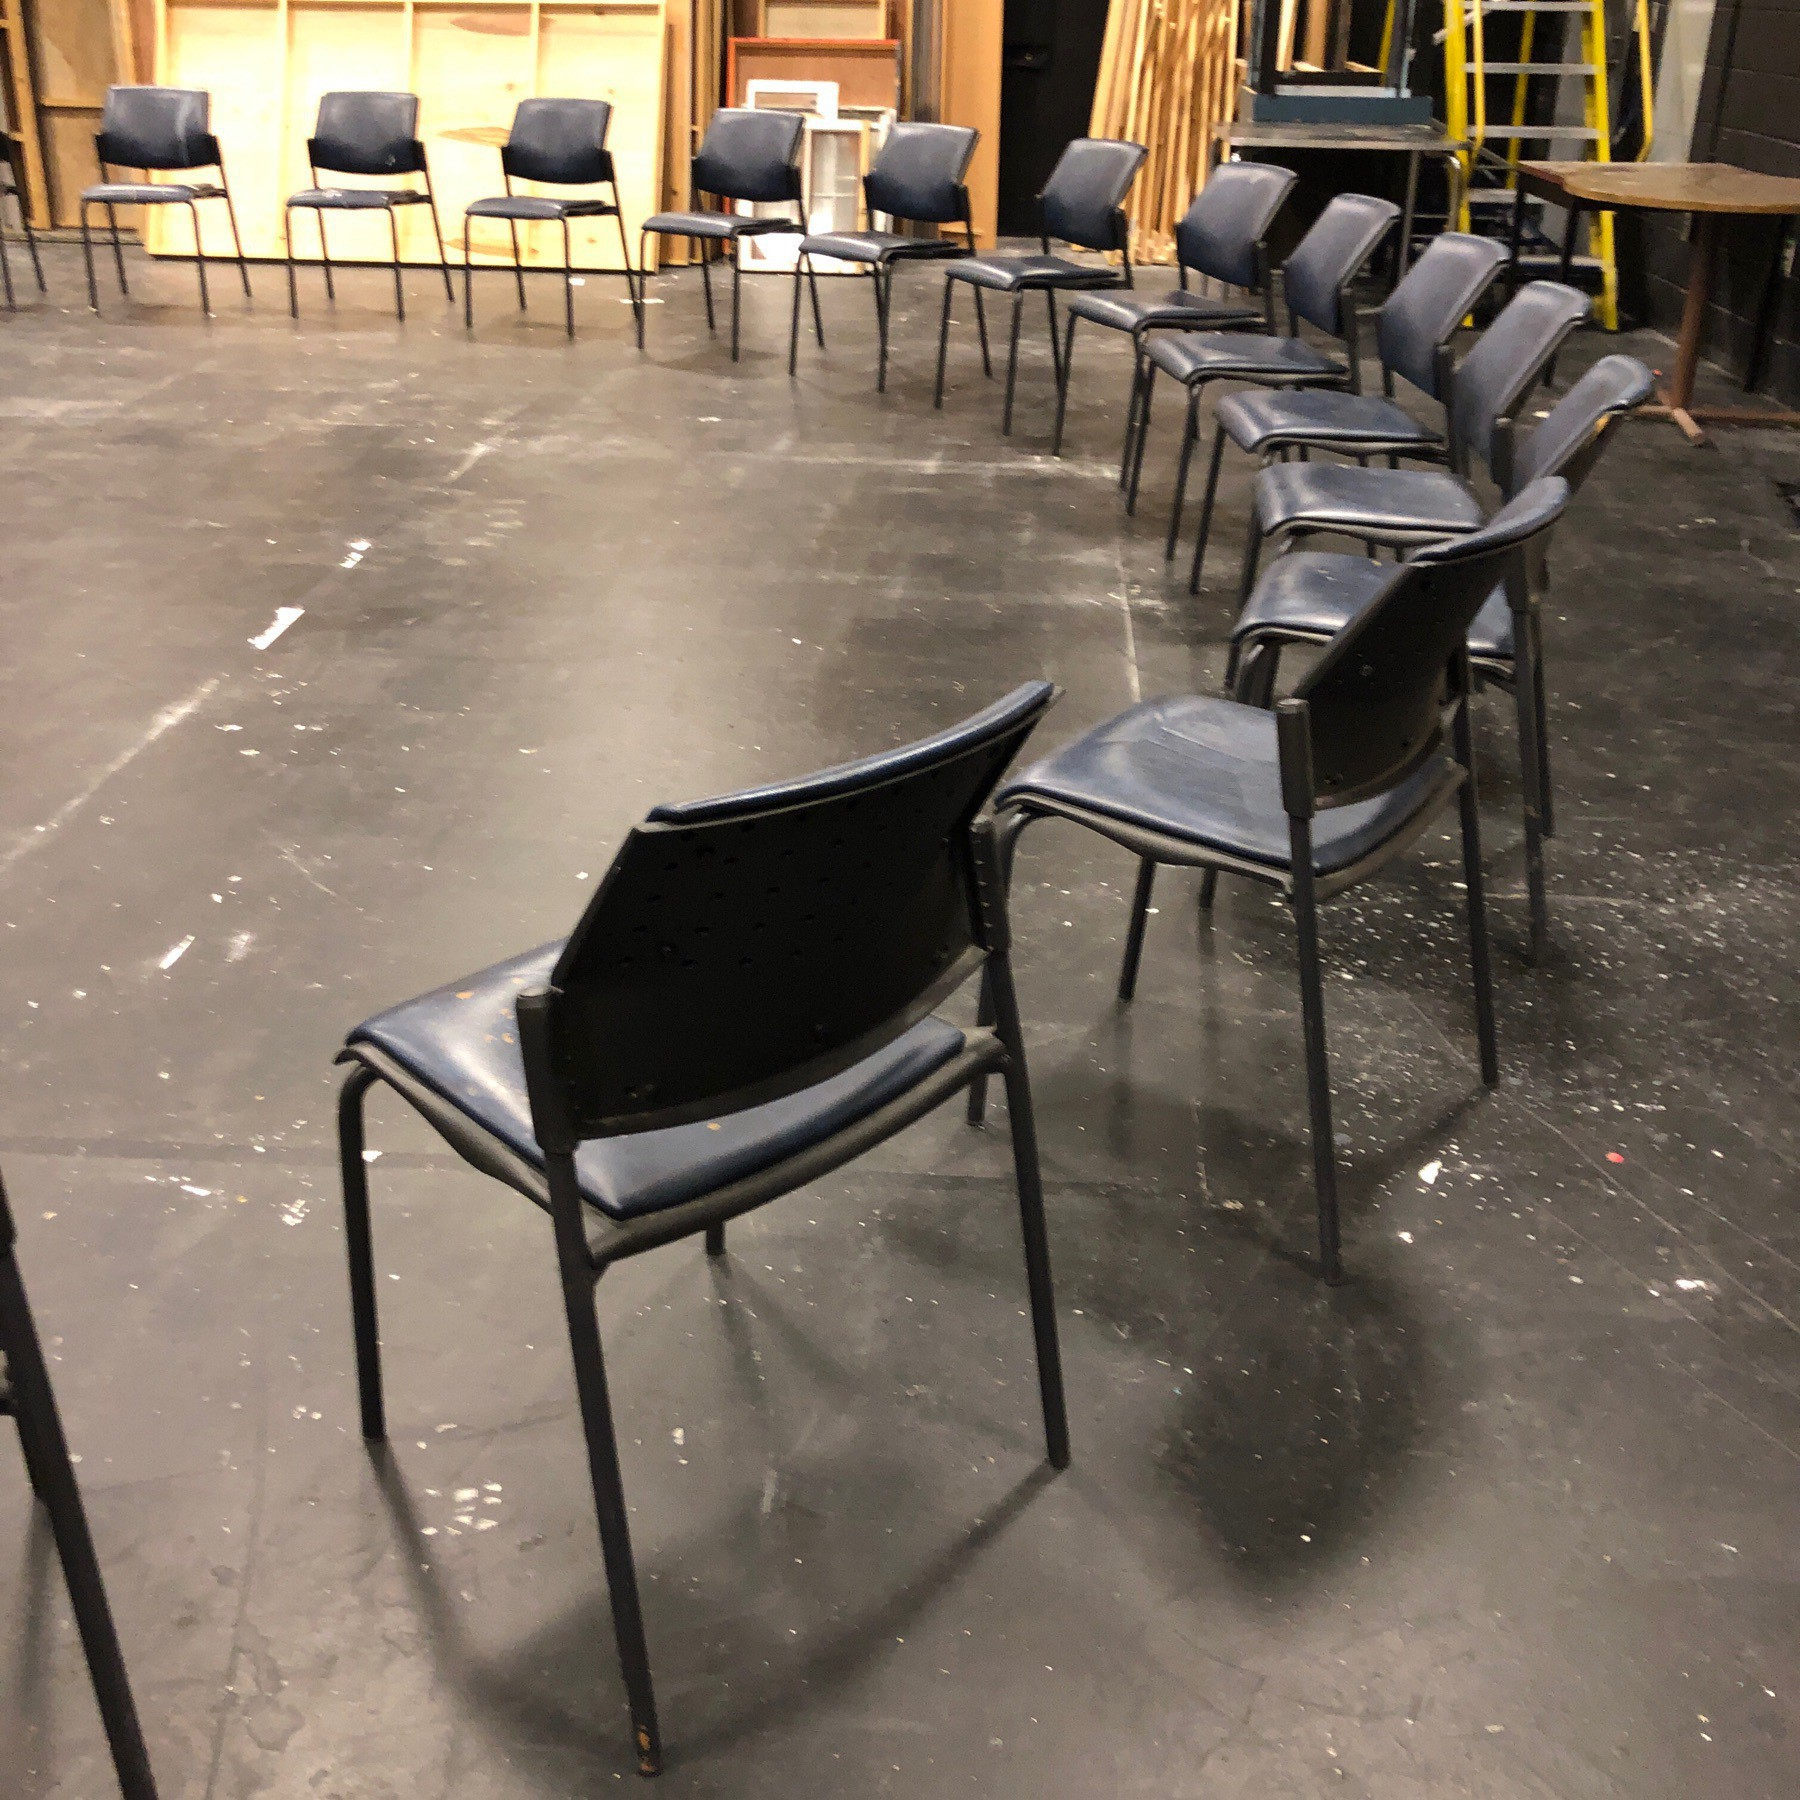 Chairs is semicircle in film studio.